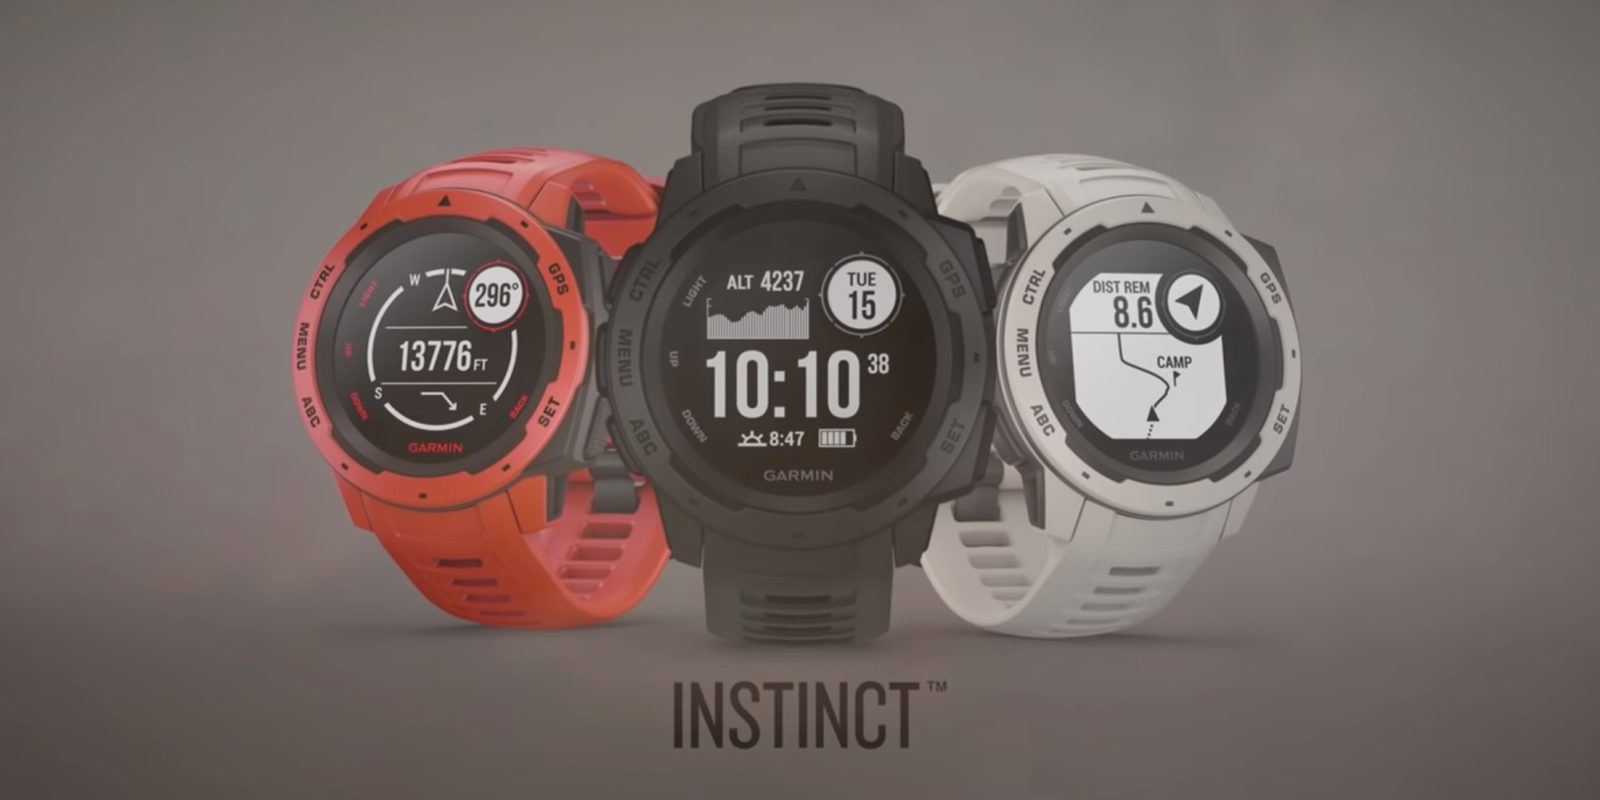 Garmin Instinct Smartwatch announced with 14 day battery